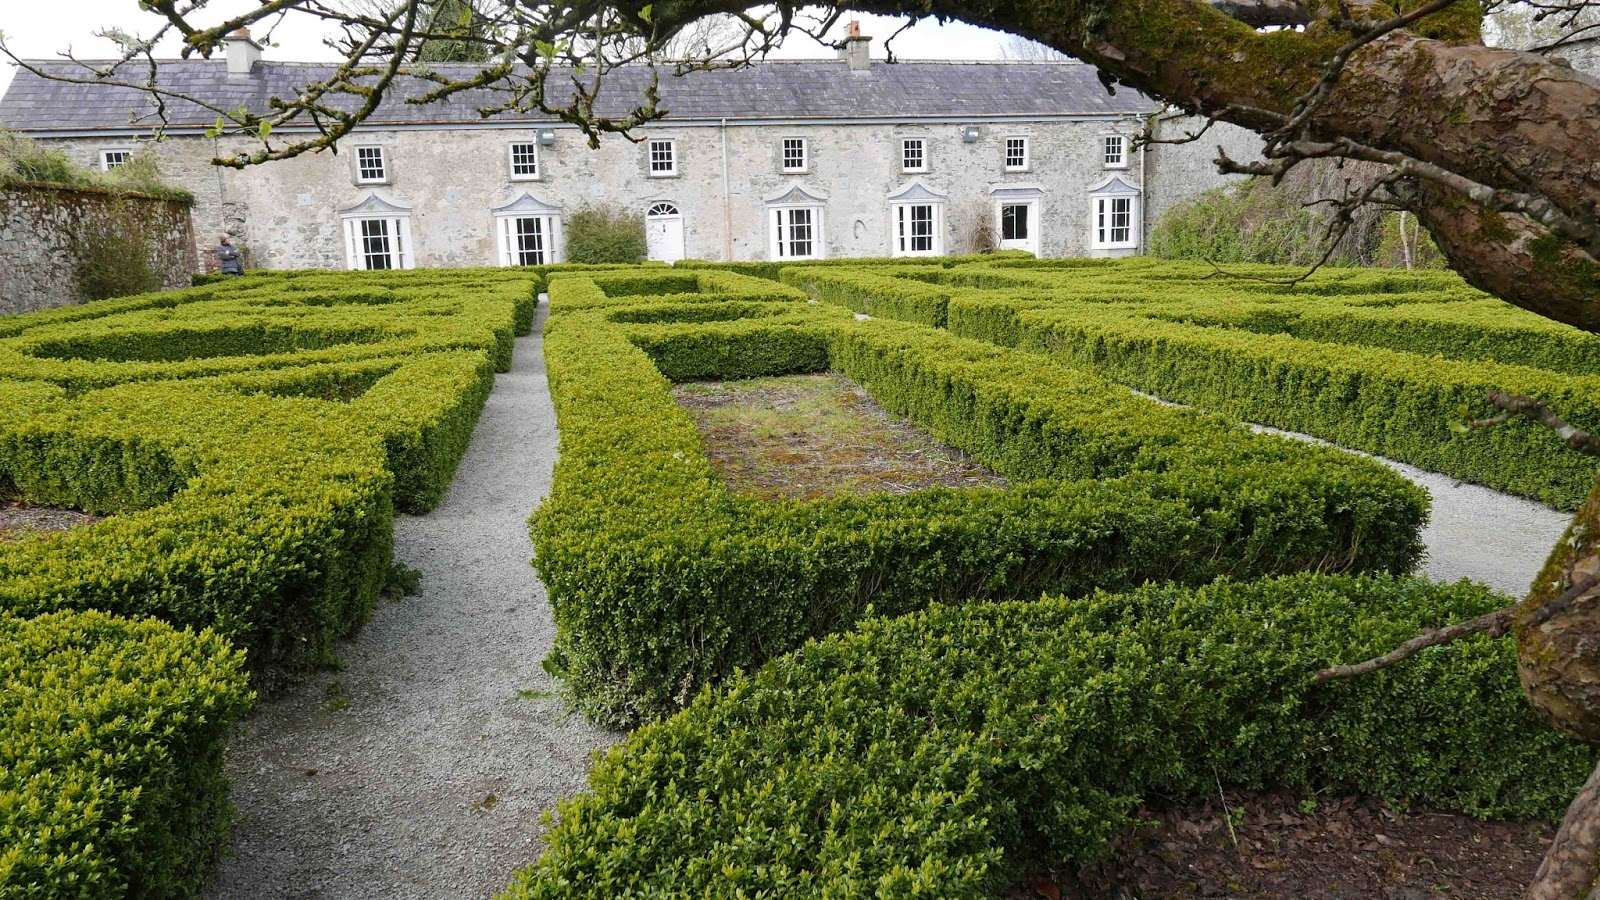 restaurants and food: doneraile. dine and stroll. lovely cafés